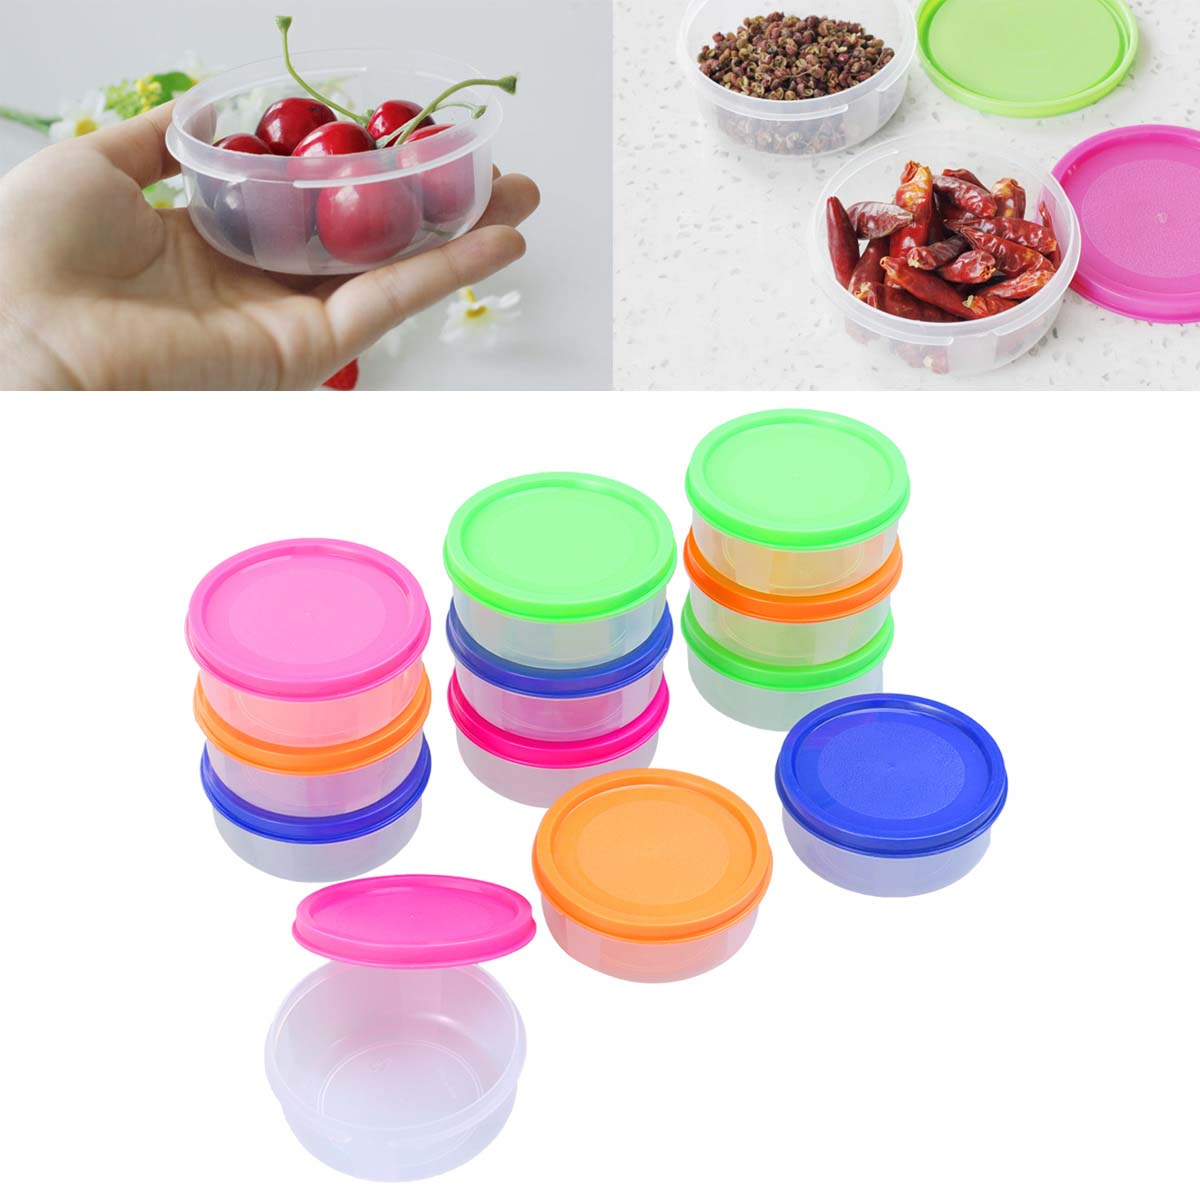 12pcs Kitchen Food Container Portable Bowl Crisper Food Preservation Mini Microwave Oven Food Storage Box For Infant Baby Kids(China)